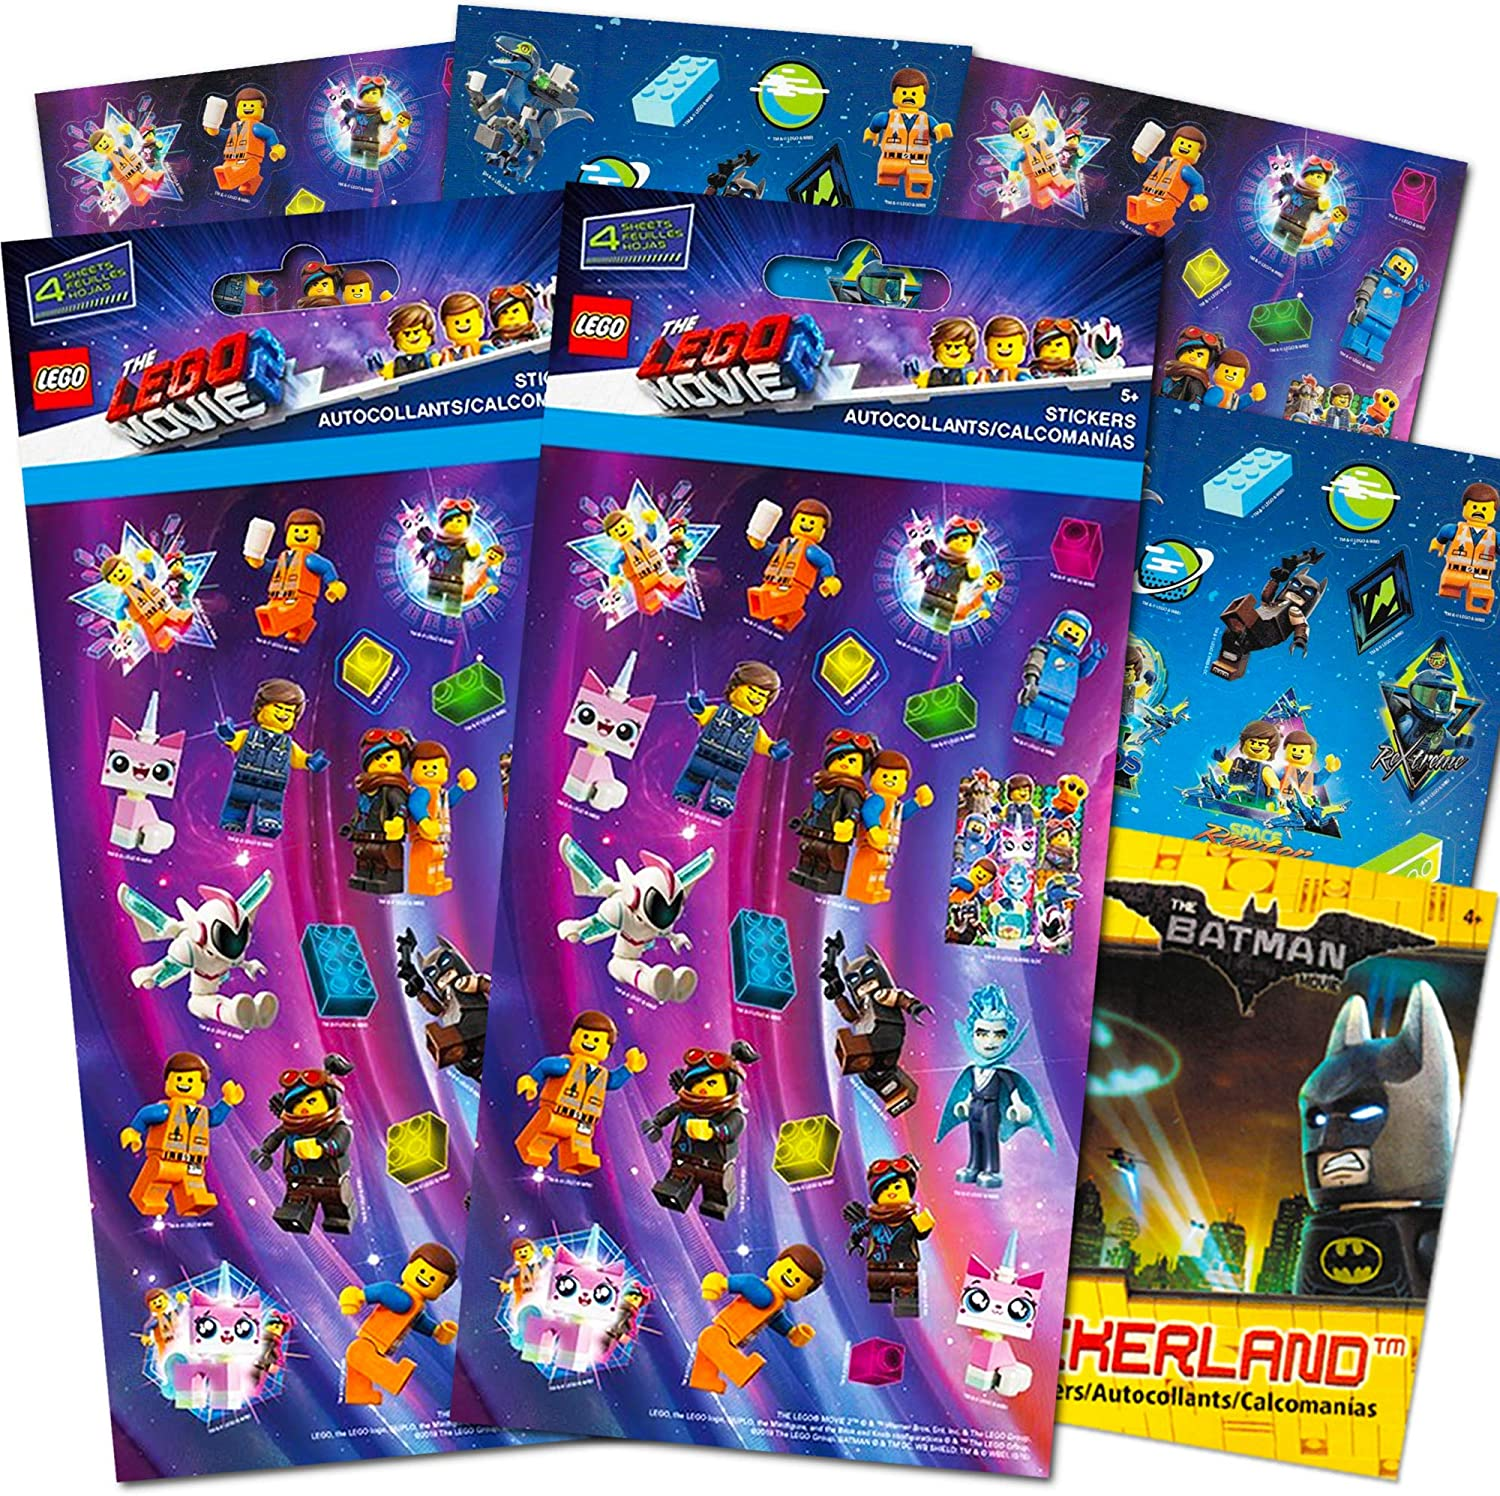 Lego Movie 2 & Batman Stickers Party Supplies Set ~ 14 Lego Batman & Lego Movie 2 Party Favors Sheets (300+ Stickers)